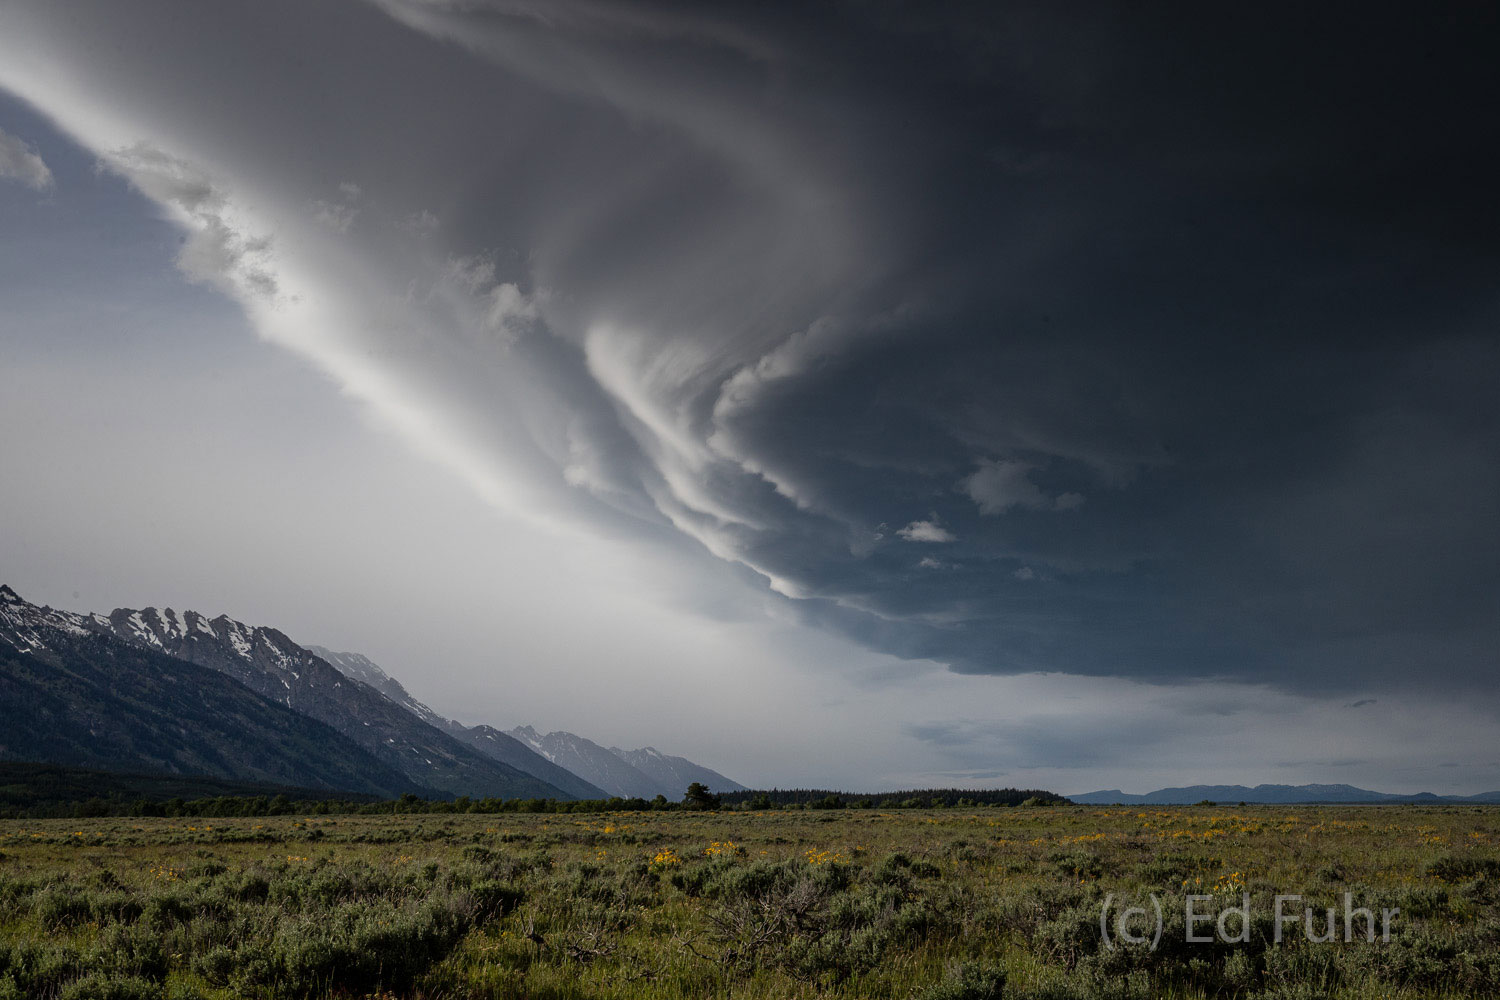 A powerful thunderstorm cell sweeps over the Teton range and across the valley floor.